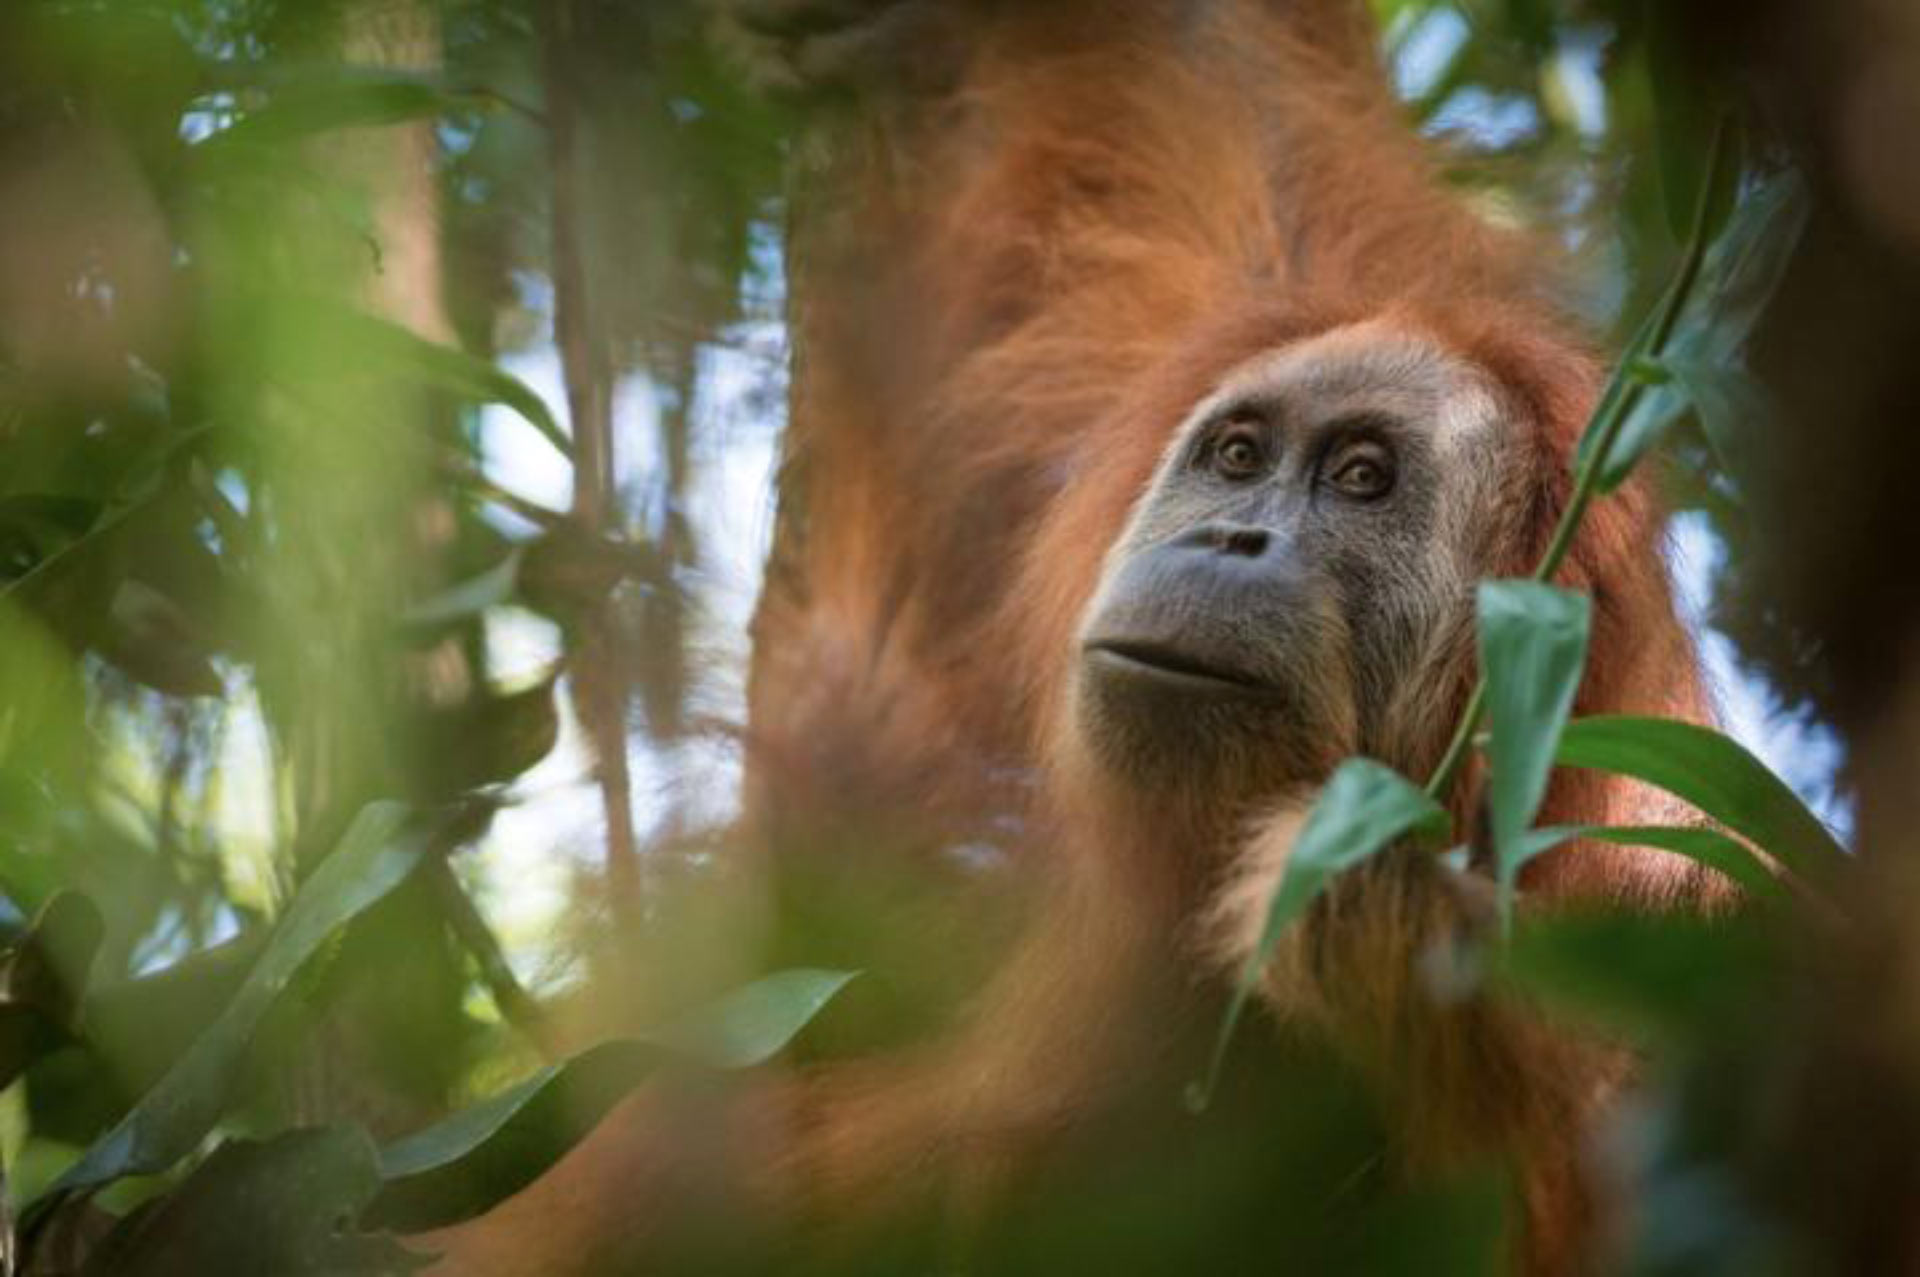 Researchers discover a new orangutan species in Sumatra, Indonesia